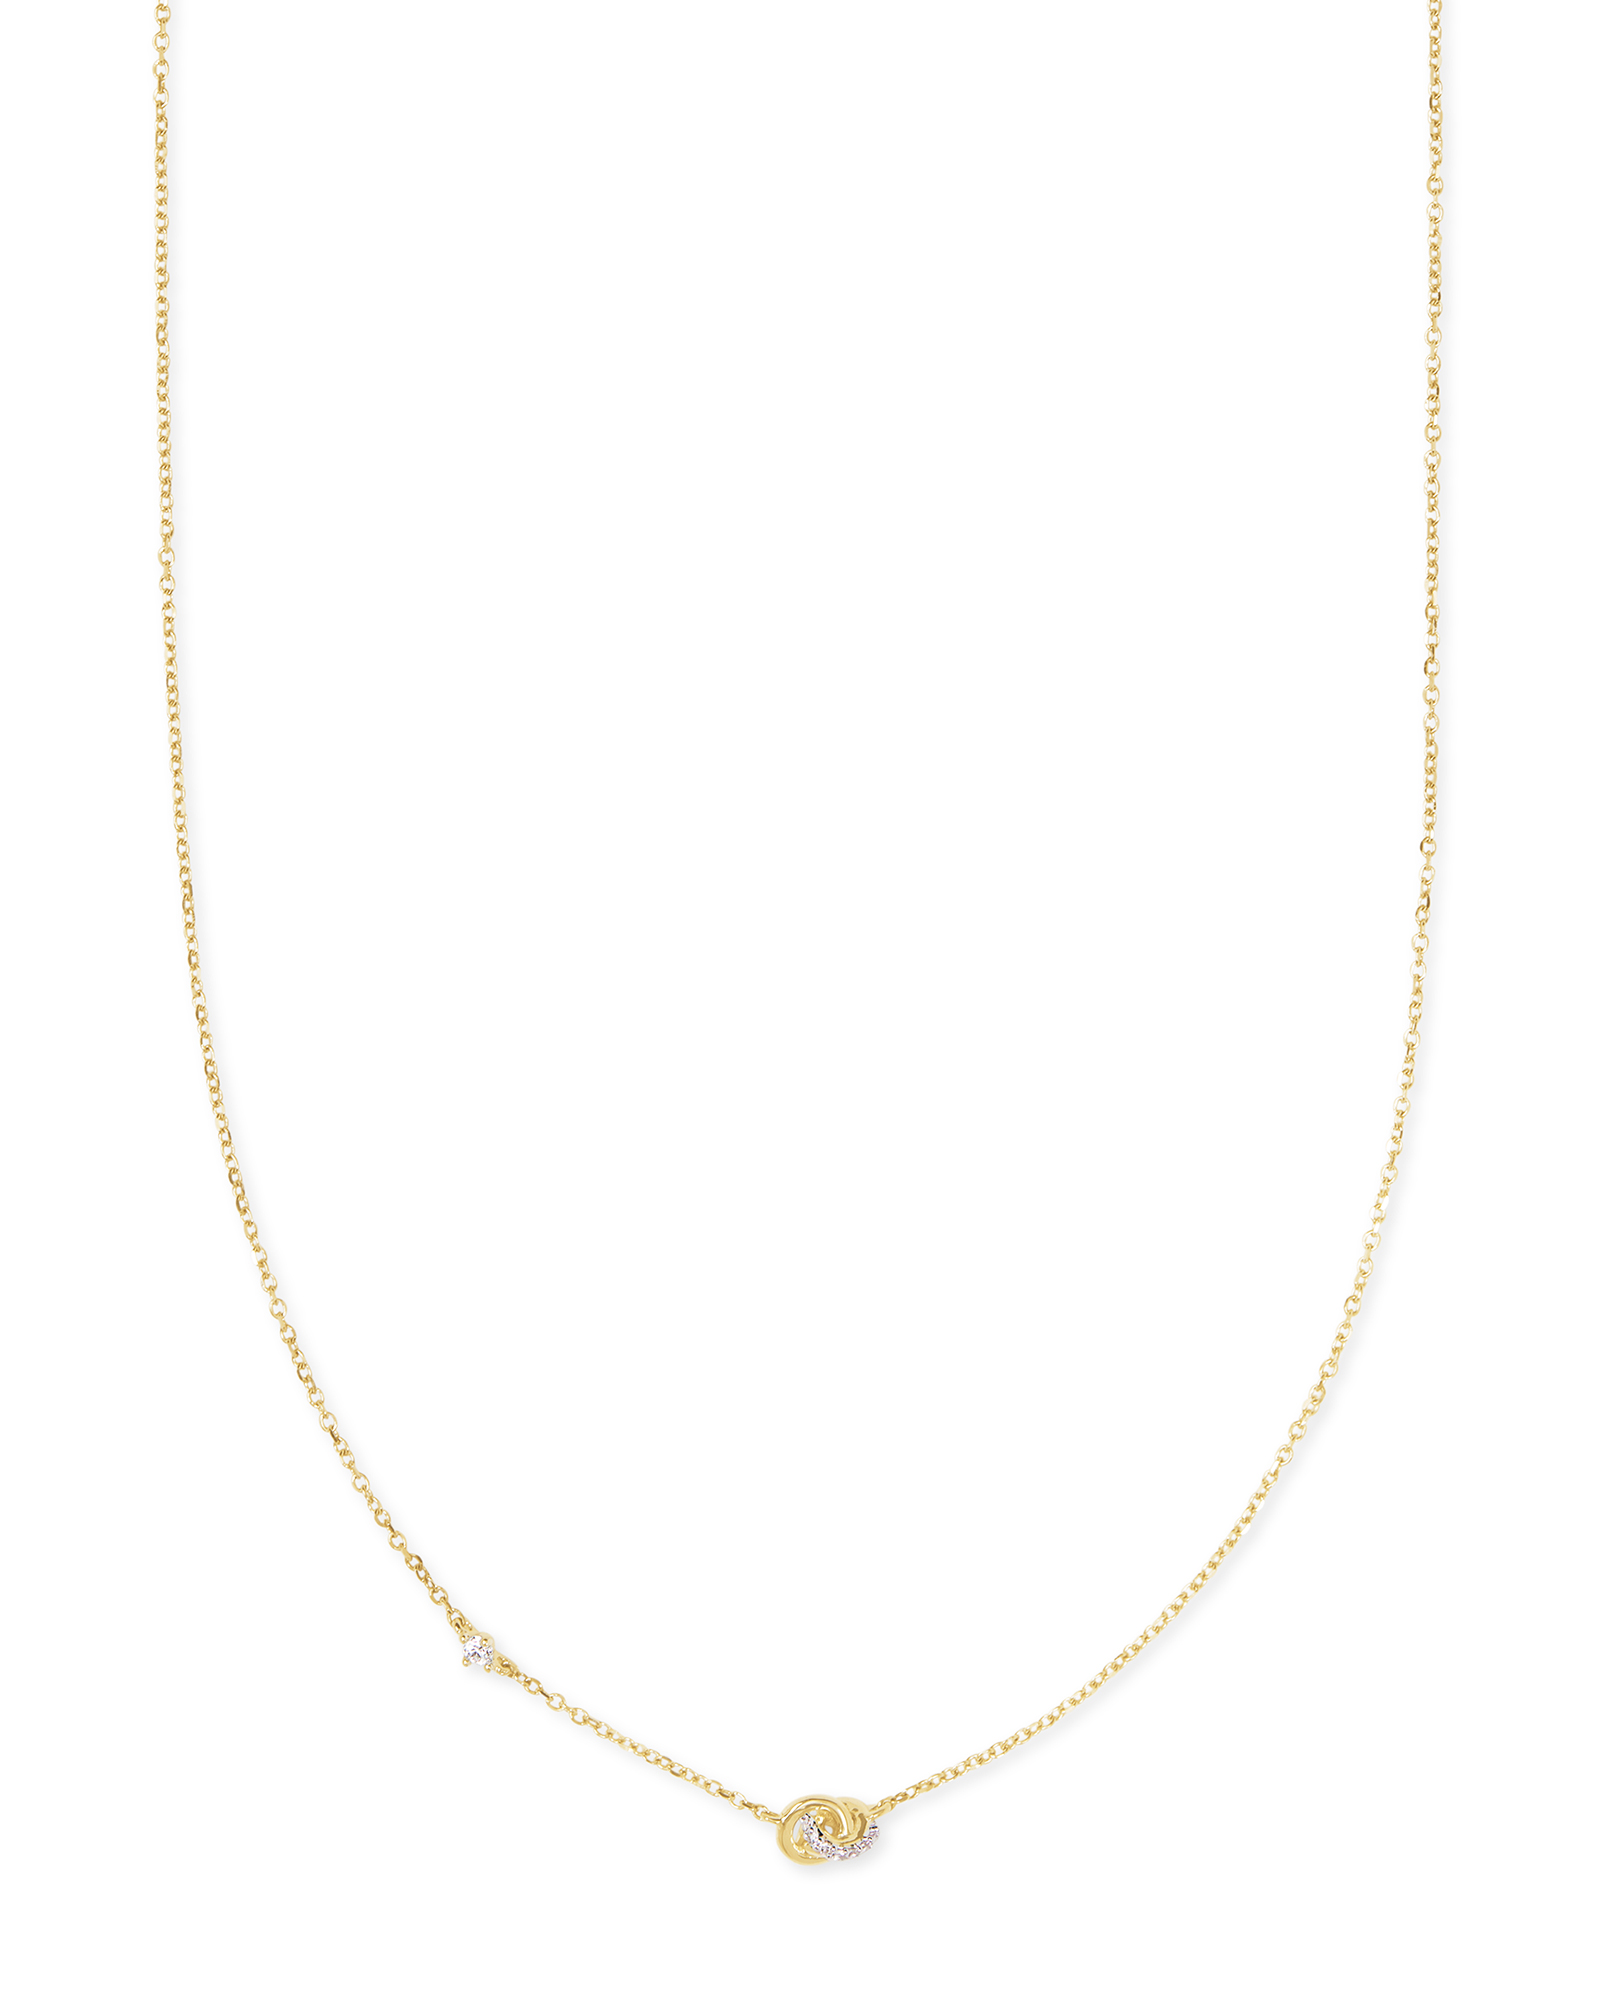 Love Knot 14K Yellow Gold Short Pendant Necklace in White Diamond